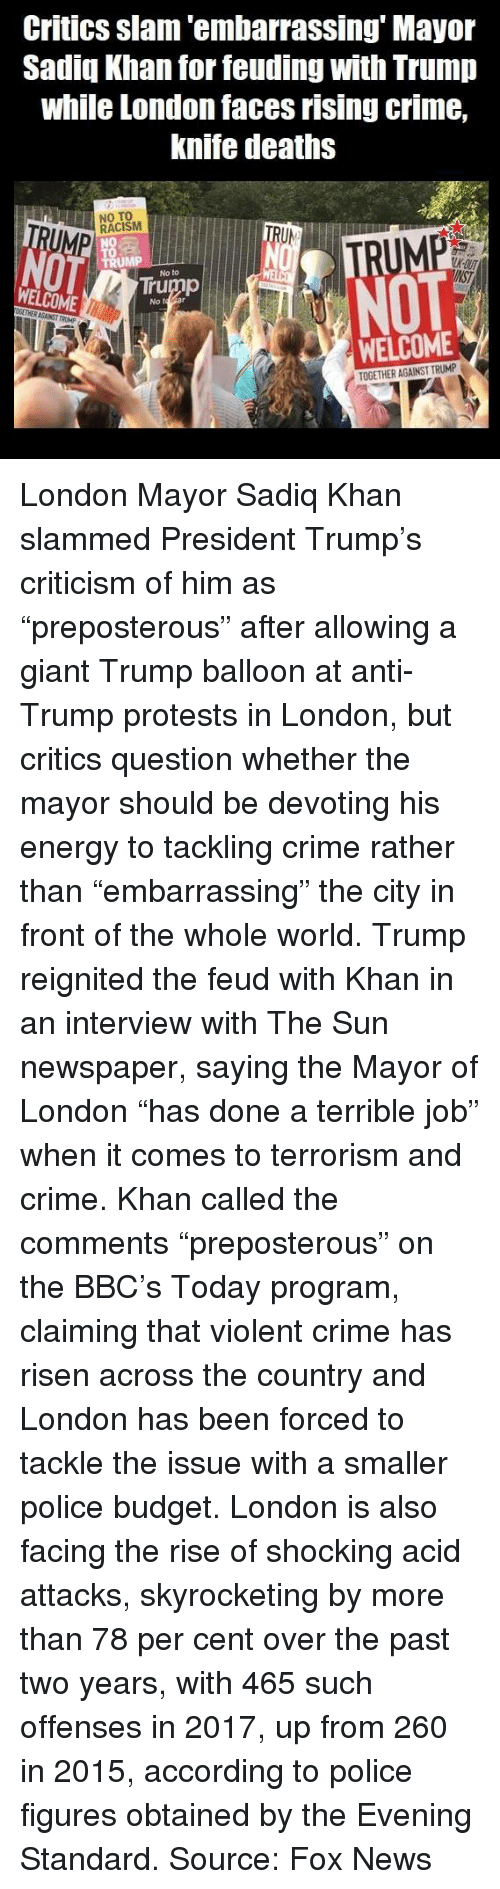 """Crime, Energy, and Memes: Critics slam'embarrassing' Mayor  Sadiq Khan for feuding with Trump  while London faces rising crime,  knife deaths  NO TO  RACISM  UK-OU  No to  NOT  WELCOME  Trump  No t  WELCOME  TOGETHER AGAINST TRUMP London Mayor Sadiq Khan slammed President Trump's criticism of him as """"preposterous"""" after allowing a giant Trump balloon at anti-Trump protests in London, but critics question whether the mayor should be devoting his energy to tackling crime rather than """"embarrassing"""" the city in front of the whole world.  Trump reignited the feud with Khan in an interview with The Sun newspaper, saying the Mayor of London """"has done a terrible job"""" when it comes to terrorism and crime.   Khan called the comments """"preposterous"""" on the BBC's Today program, claiming that violent crime has risen across the country and London has been forced to tackle the issue with a smaller police budget.  London is also facing the rise of shocking acid attacks, skyrocketing by more than 78 per cent over the past two years, with 465 such offenses in 2017, up from 260 in 2015, according to police figures obtained by the Evening Standard.  Source: Fox News"""